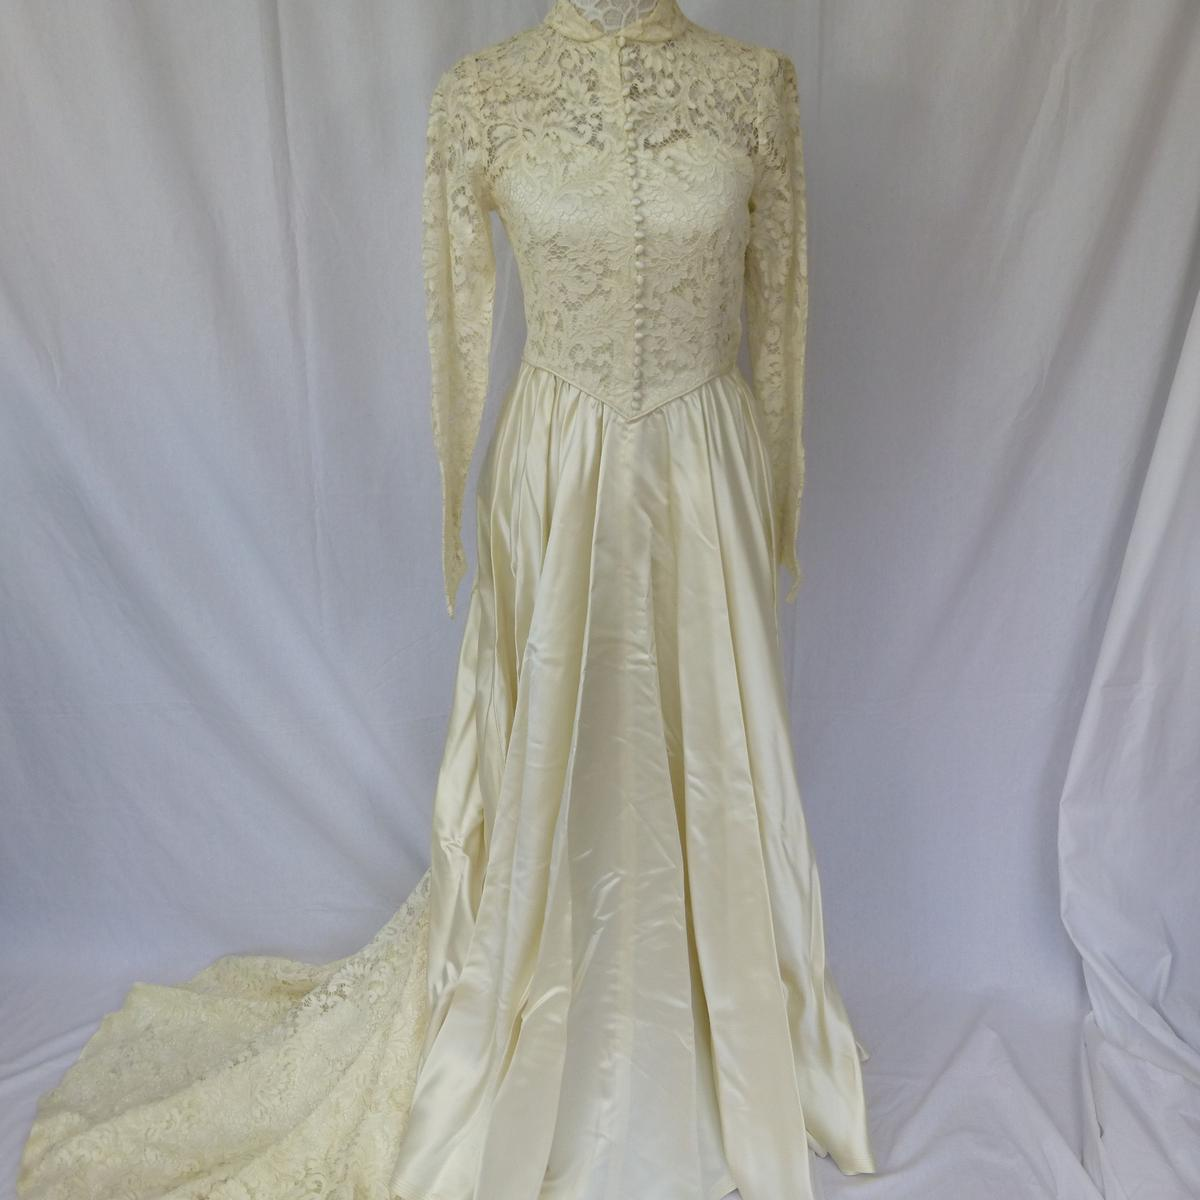 Vintage 1950s Lace Wedding Dress Size 8 In Welwyn Hatfield